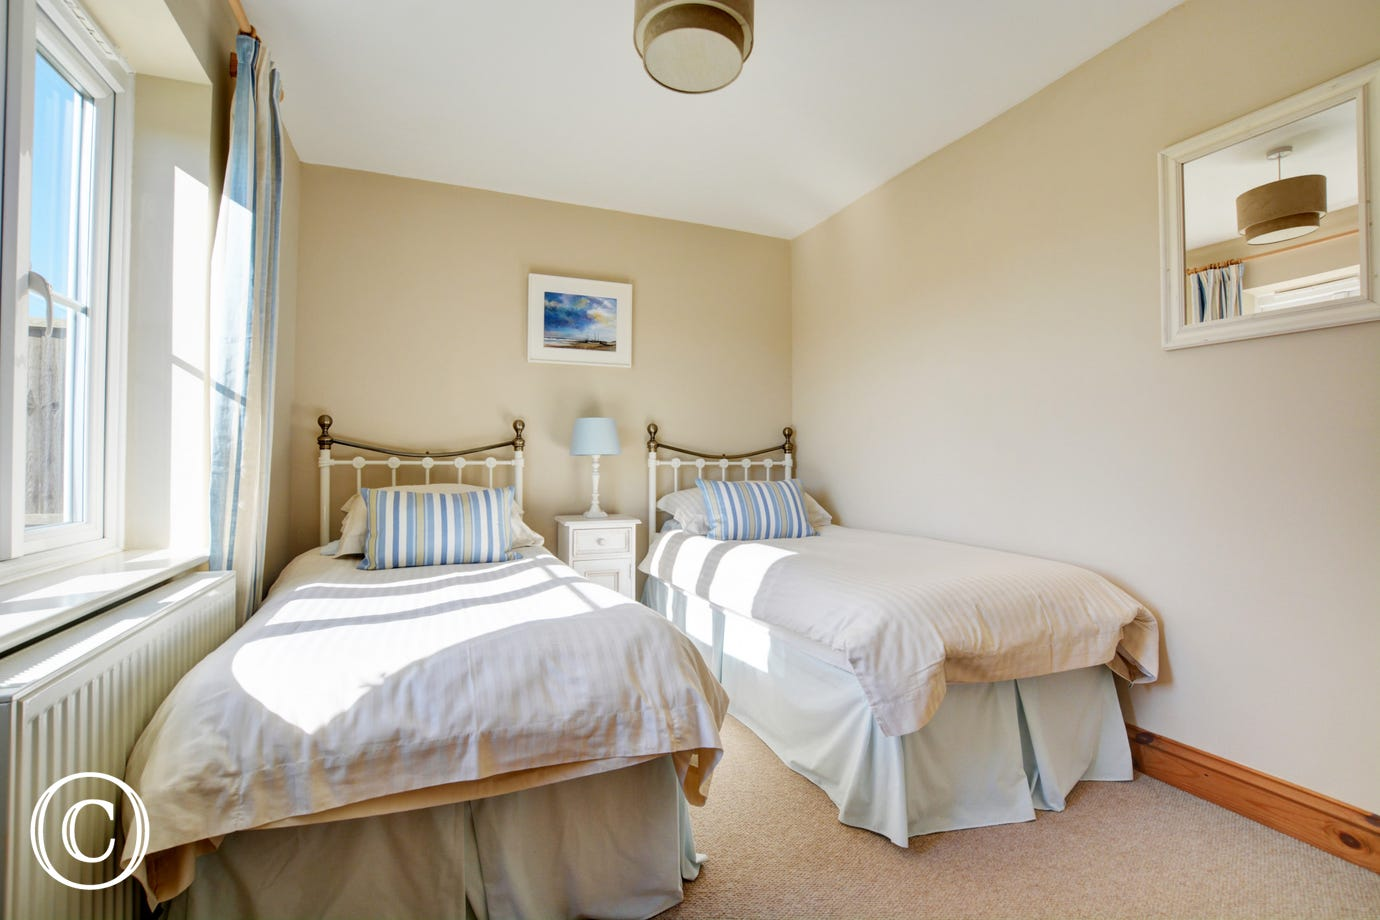 Lovely double bedroom with twin beds, ideal for children